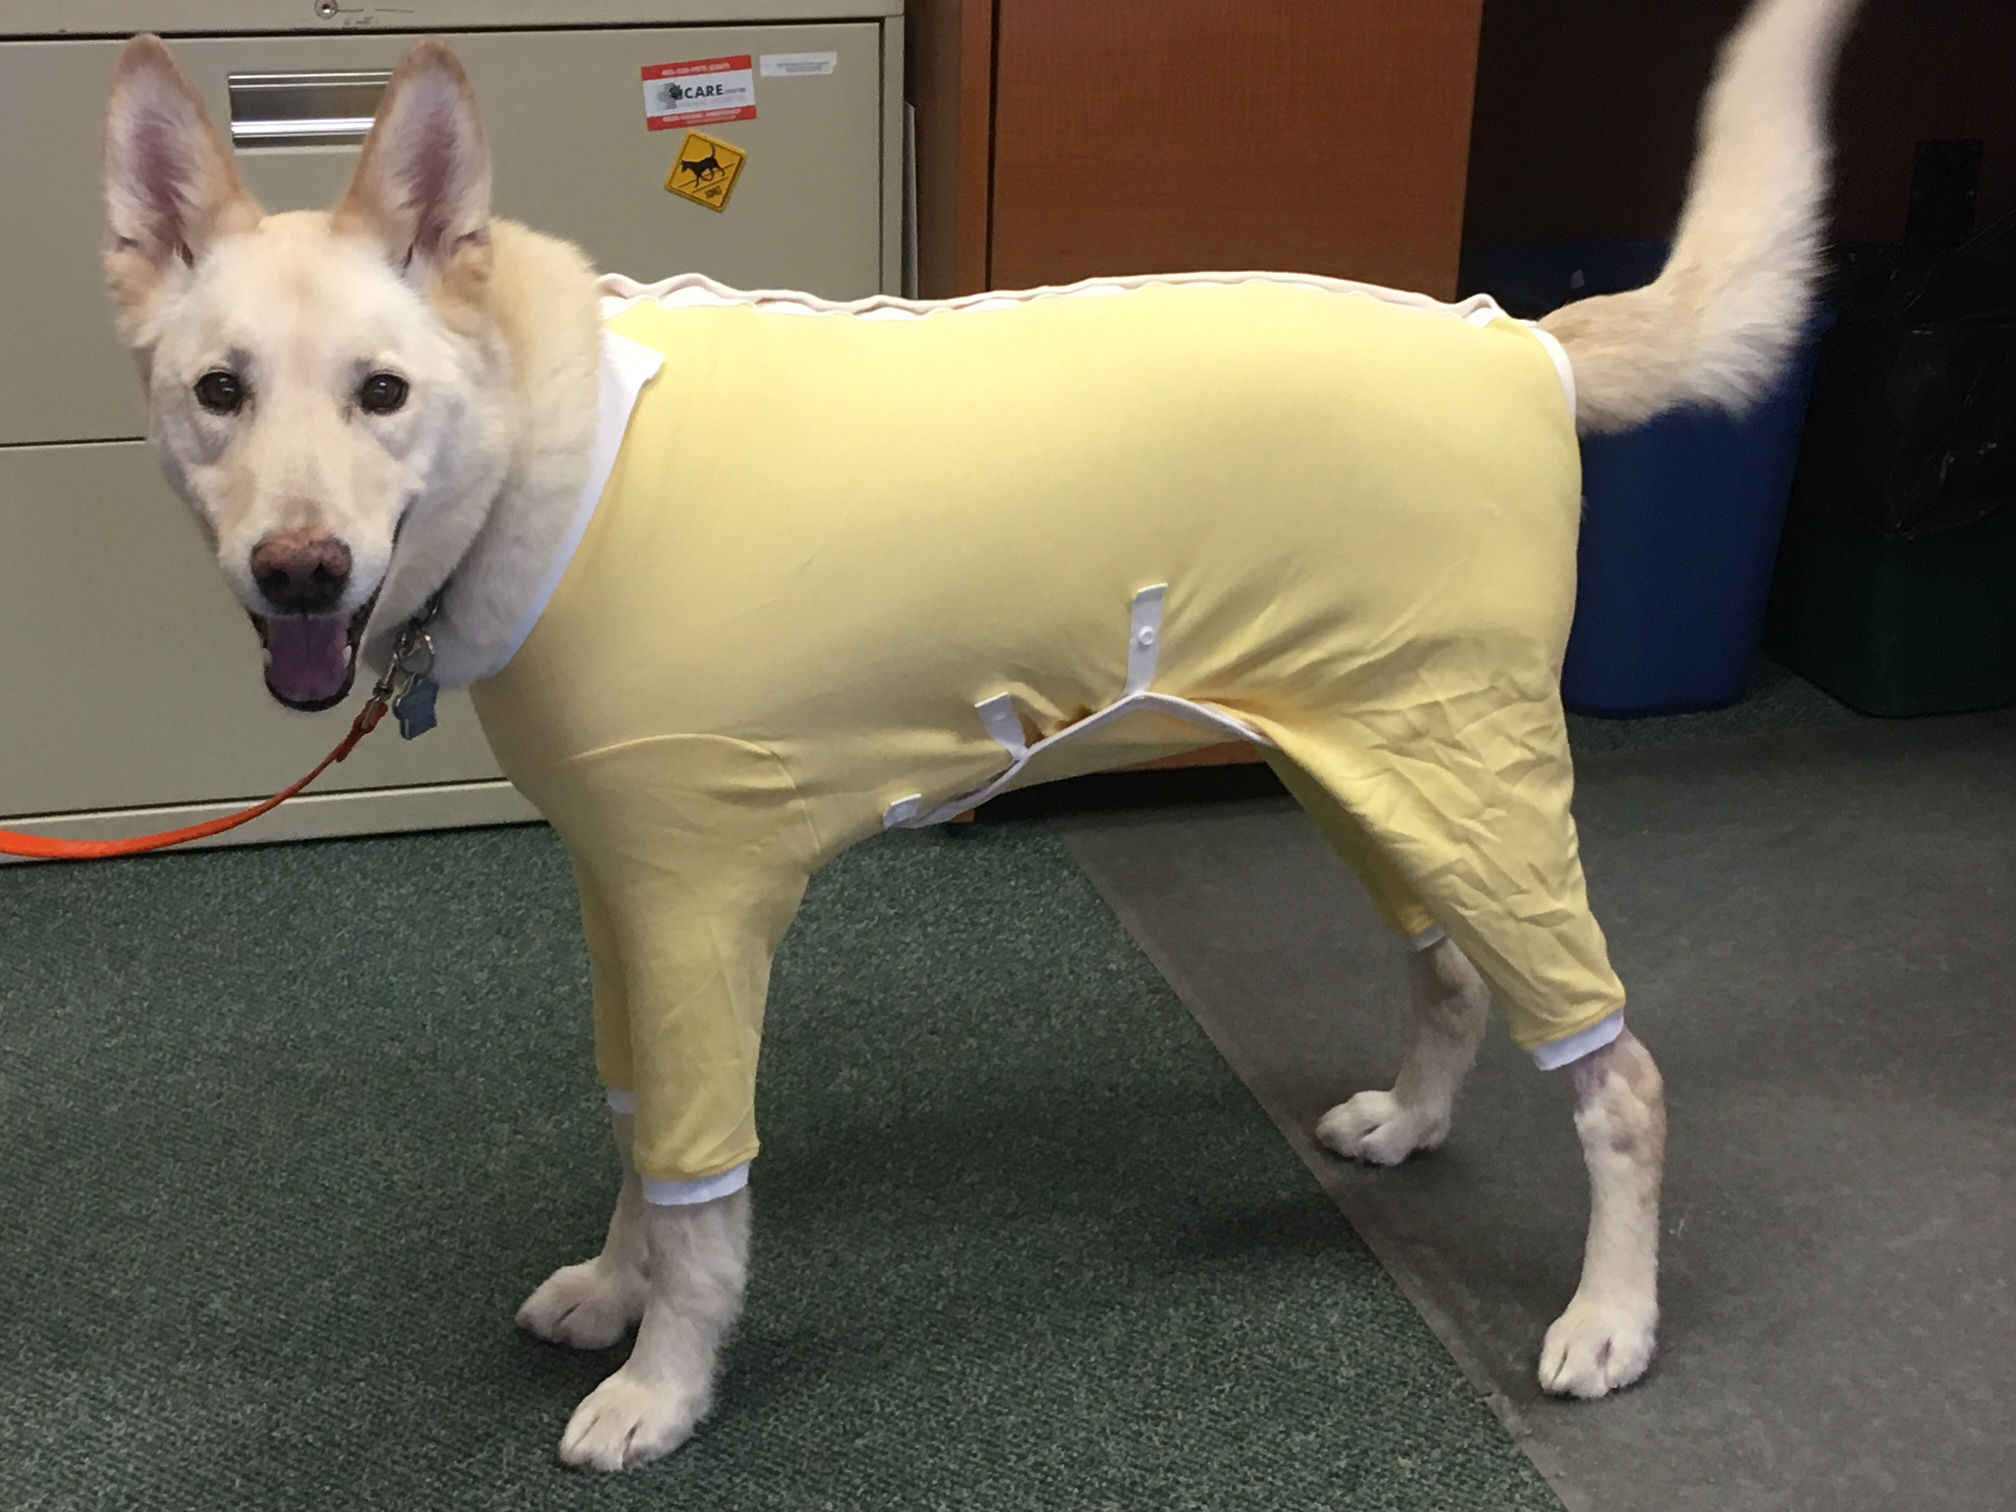 Storm modelling the latest in designer dog wear.  Soooo much better than the cone of shame!